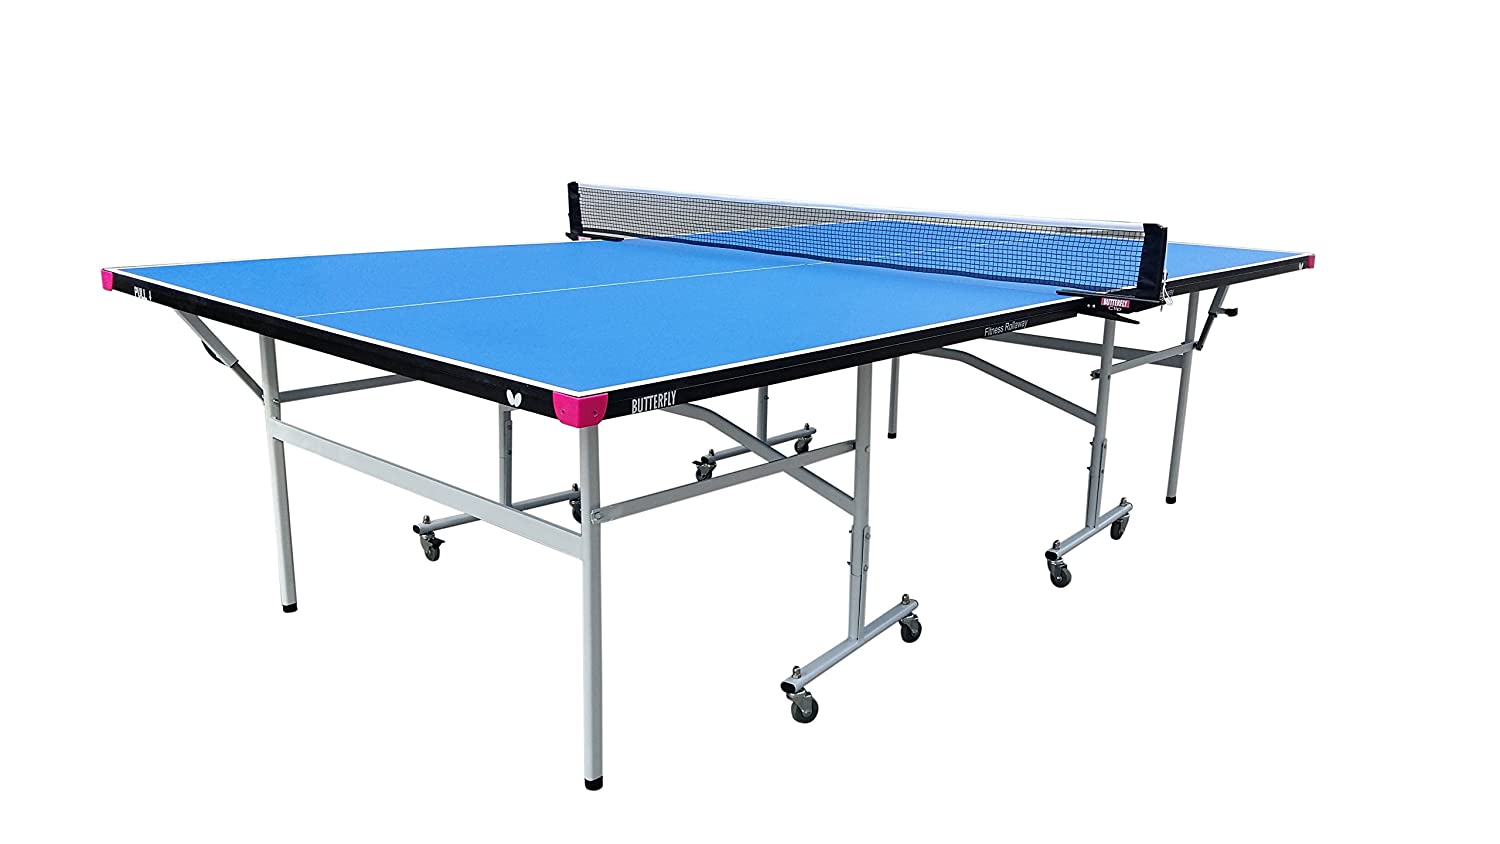 Amazon.com : Butterfly Fitness 16mm Table Tennis Table with Net ...